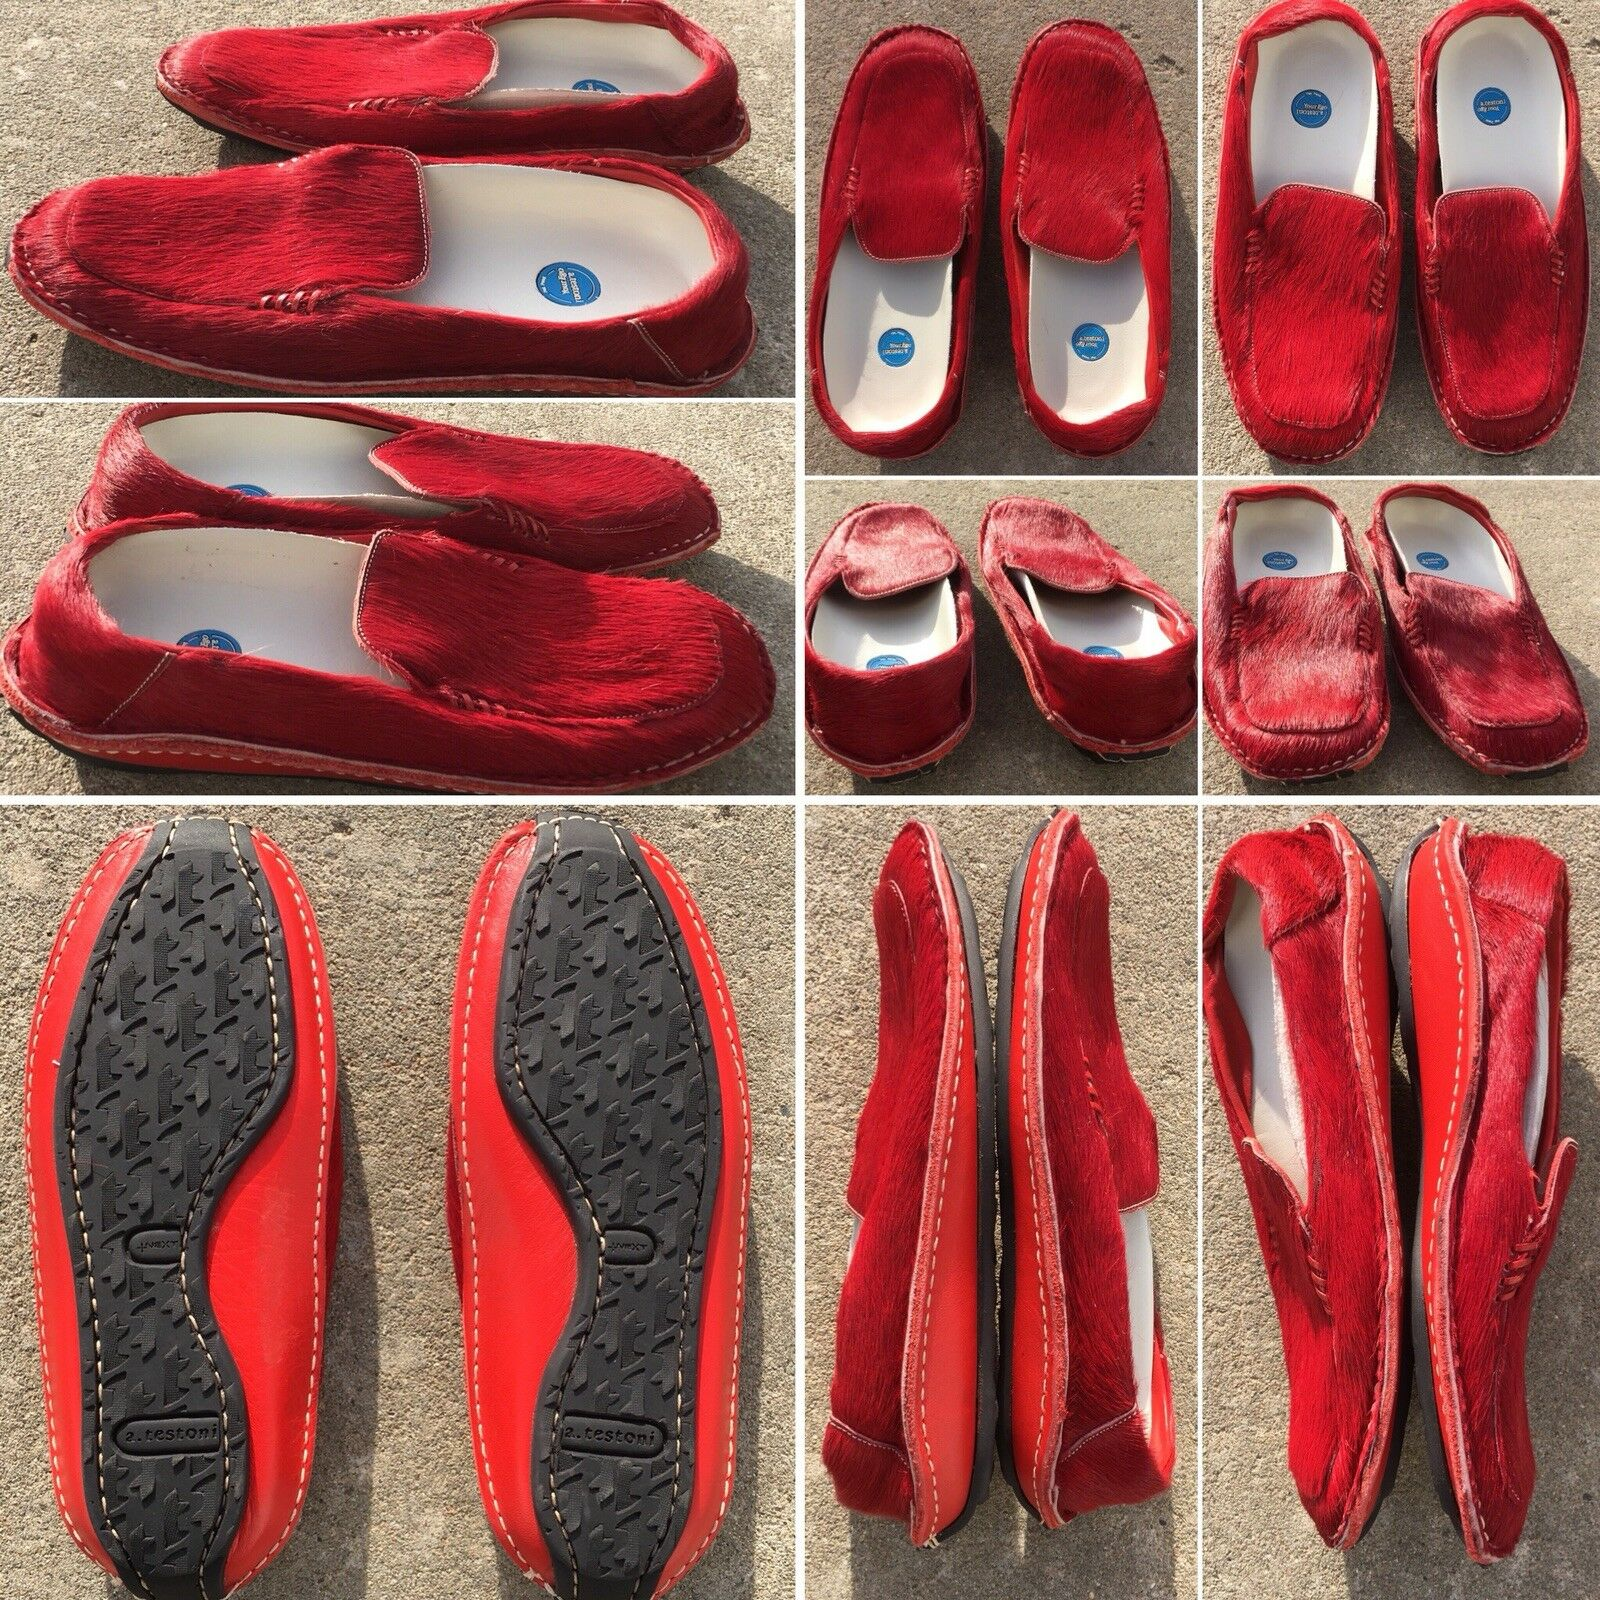 A Testoni Your Ego shoes Red Leather & Hair On Hide Moccasins Sz 36 Slip On